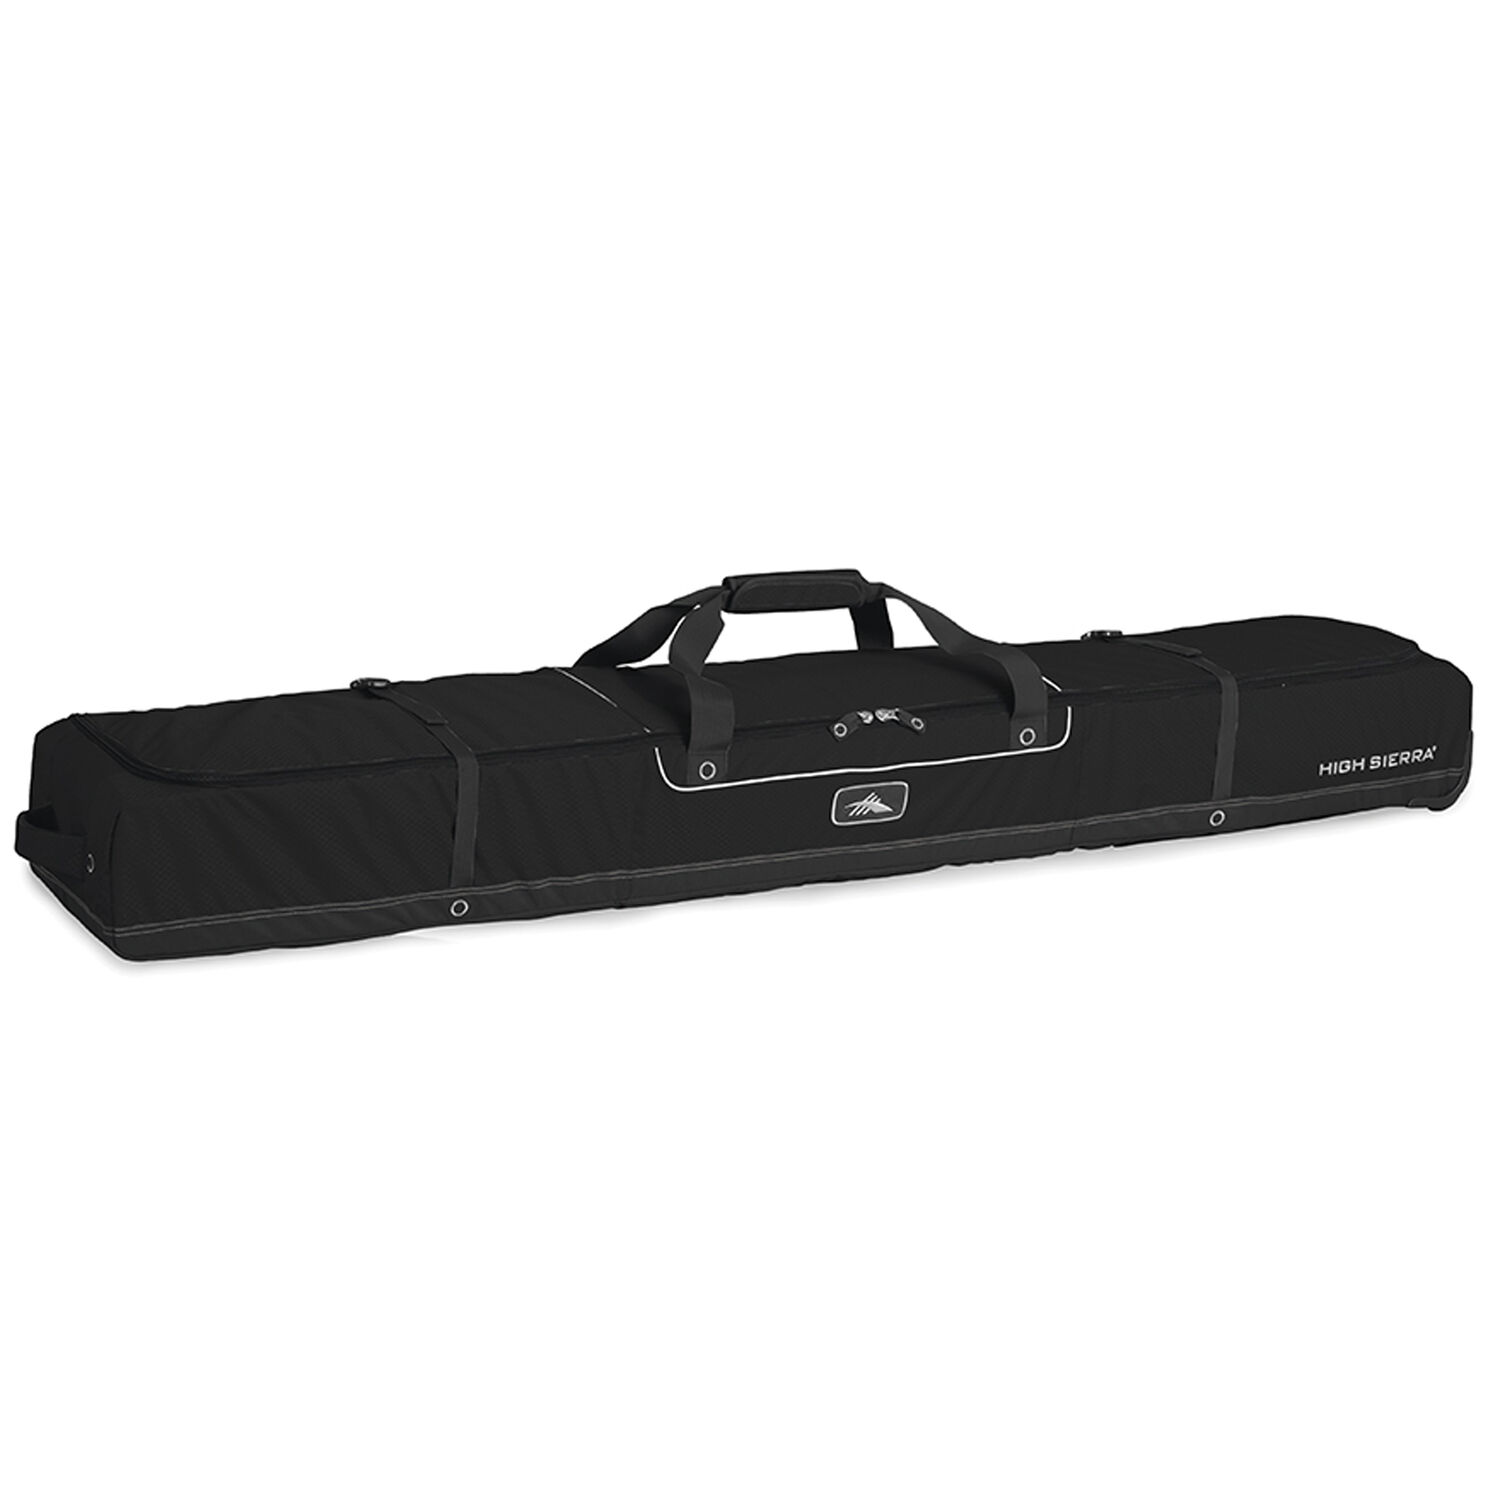 High Sierra Deluxe Wheeled Double Ski Bag in the color Black Black. 2e781eb2ae089